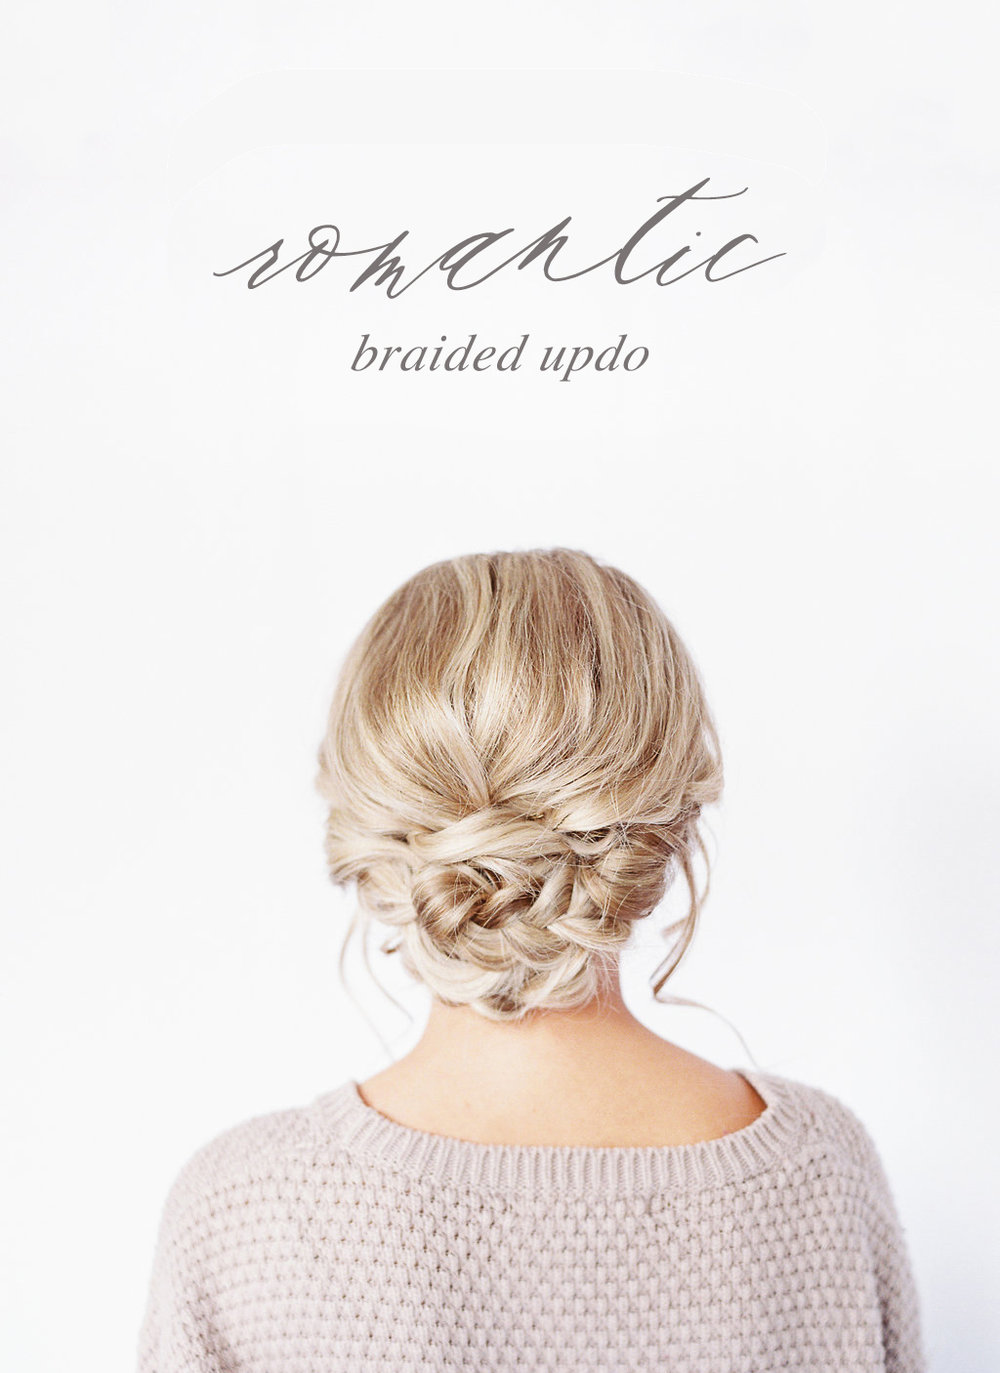 romantic braided updo wedding bridal hairstyle tutorial DIY braid elegant hair // www.hannahforsberg.com-atlanta-wedding-photographer-hair-makeup-tutorial-diy-romantic-updo.jpg